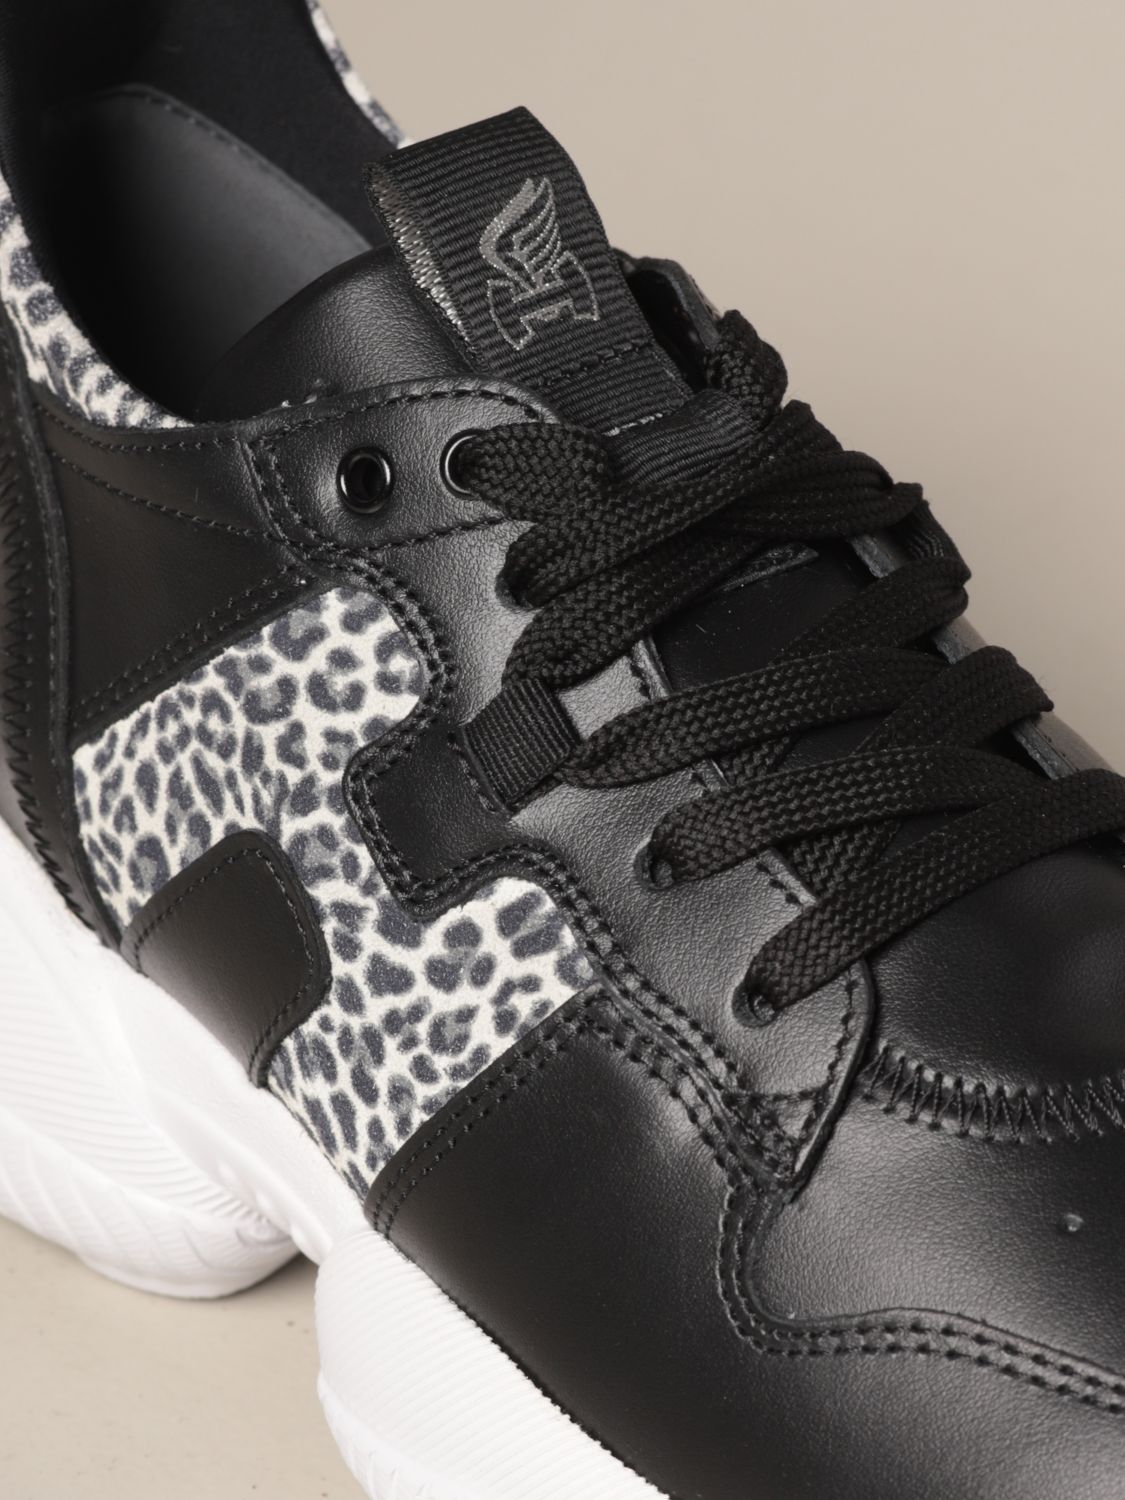 Interaction Hogan x Giglio.com sneakers in animalier leather and suede